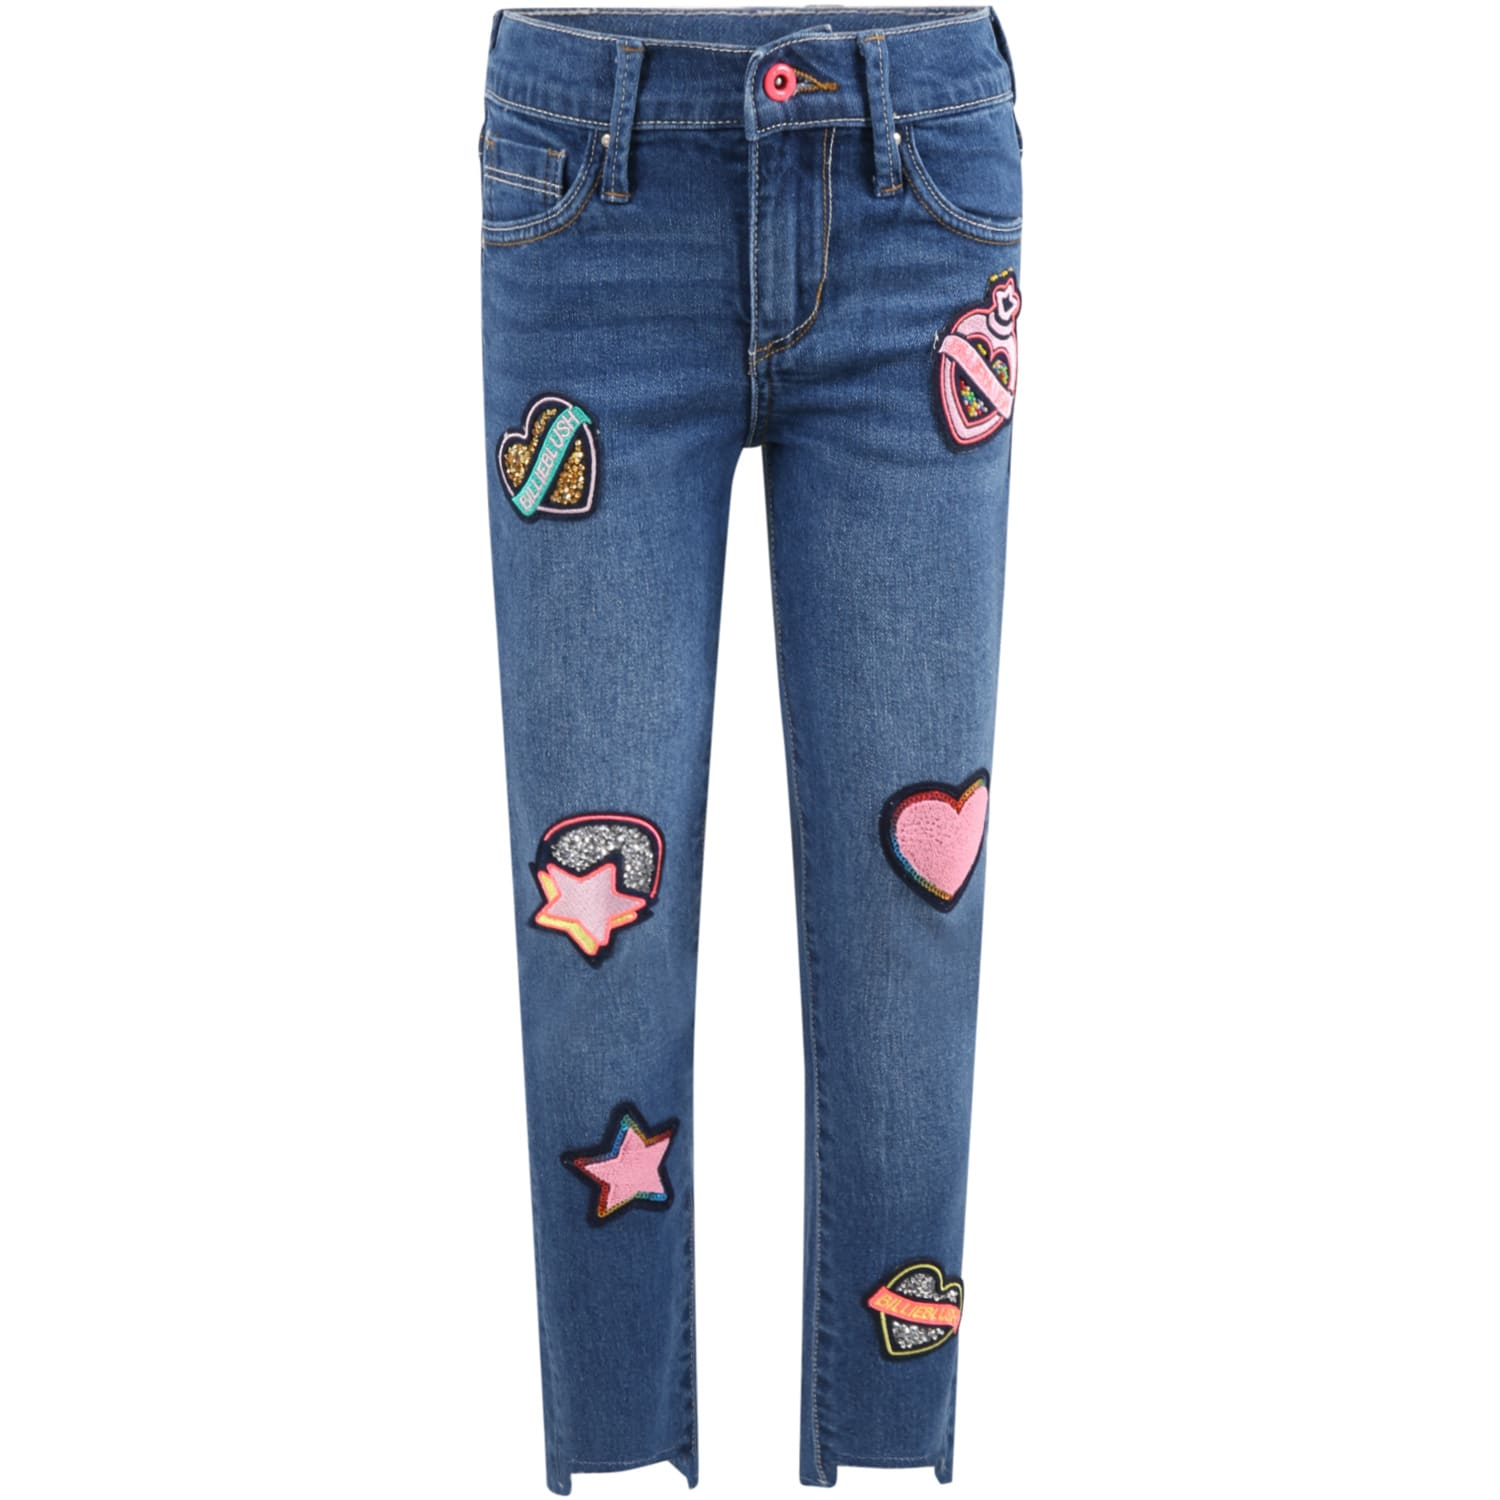 Blue Jeans For Girl With Logo